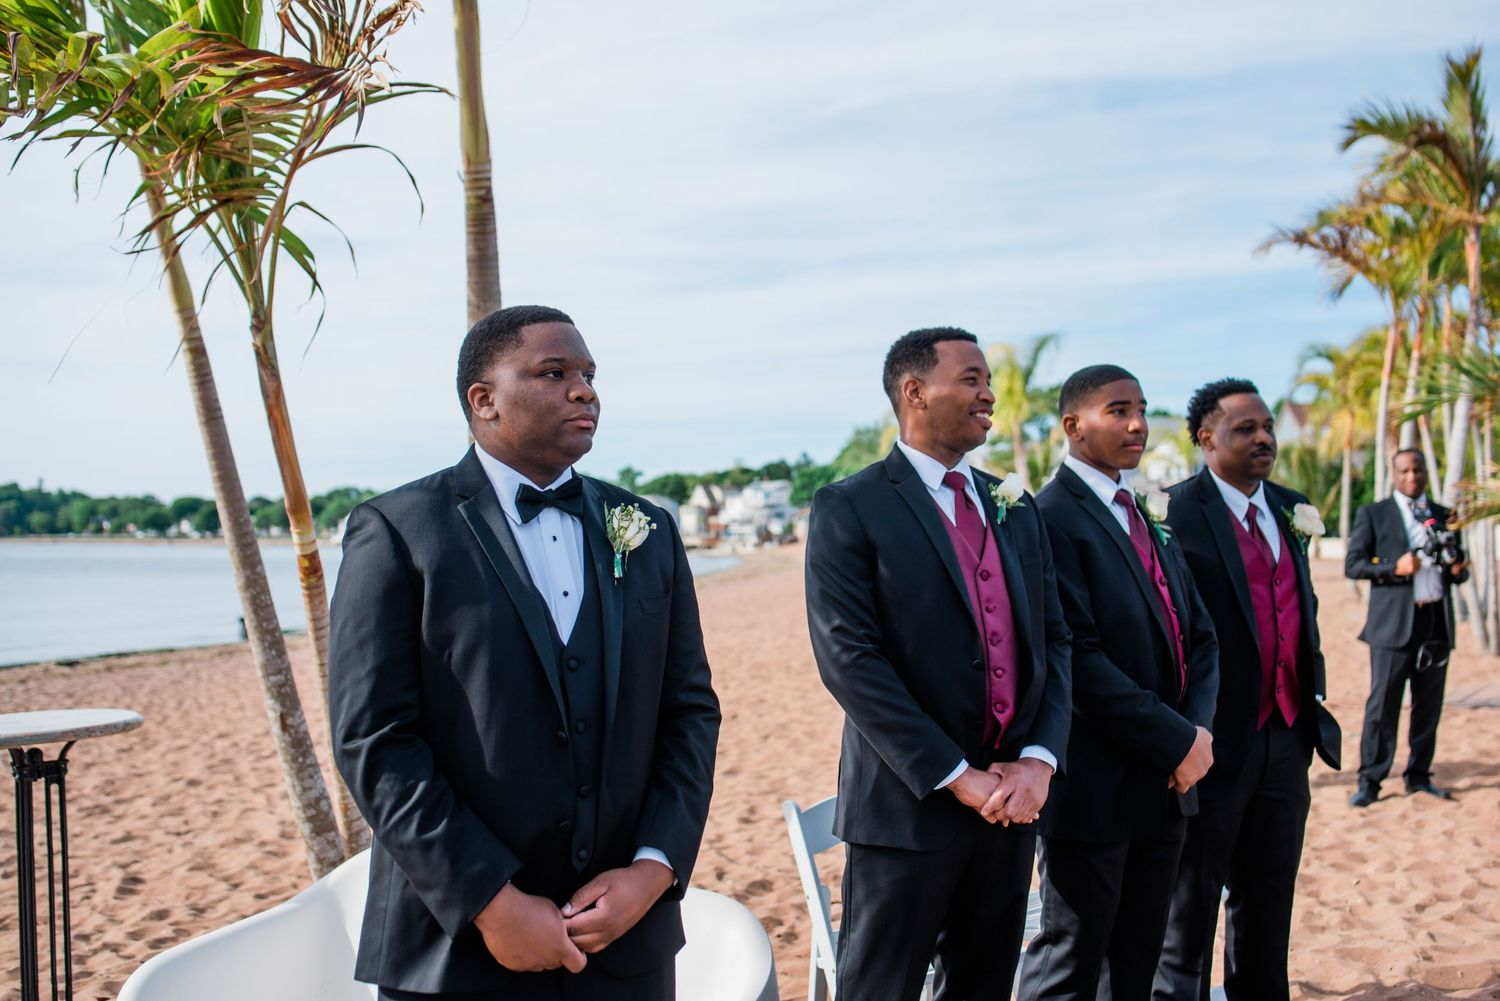 groom and groomsmen waiting for bride